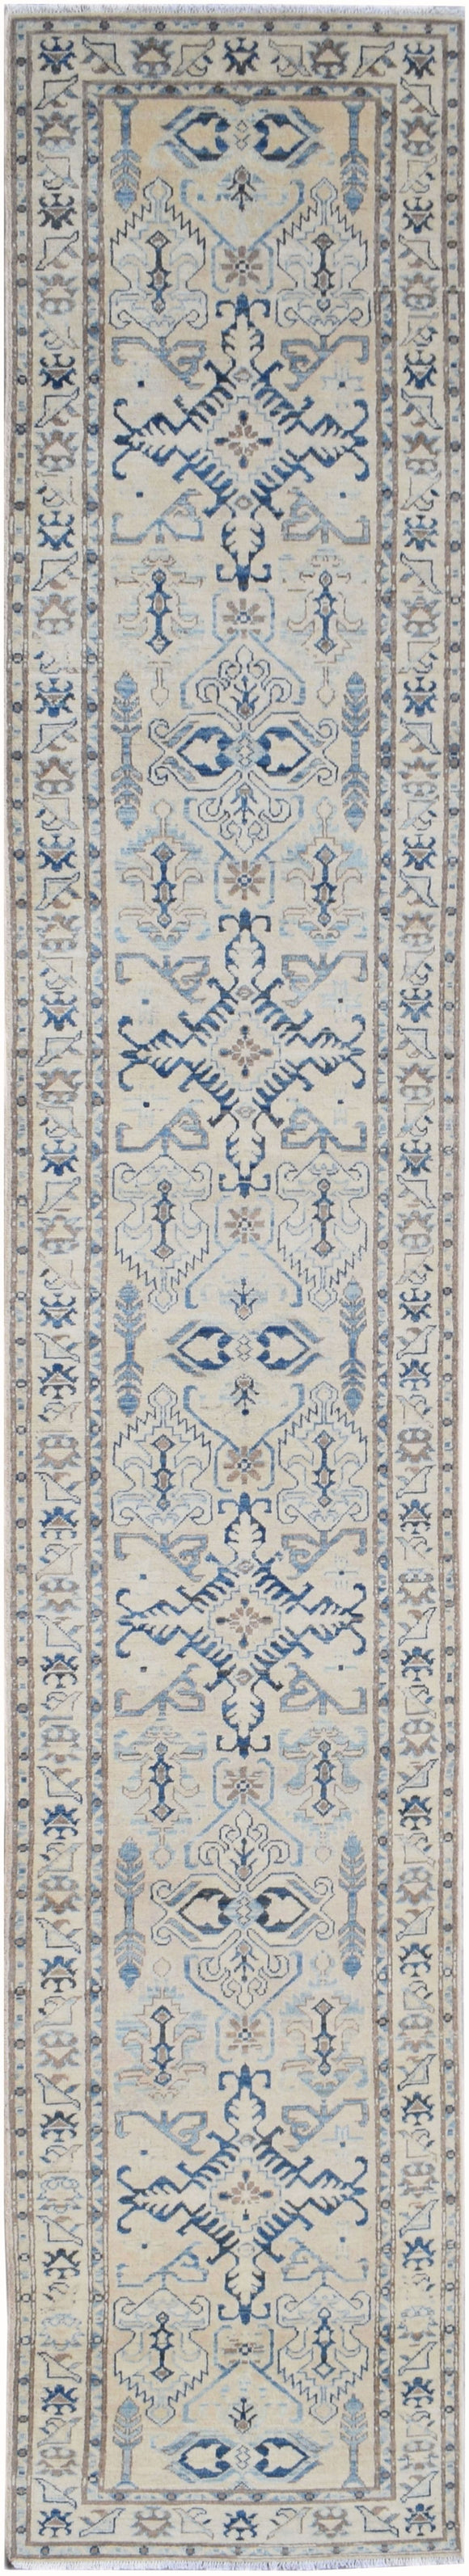 Handmade Sultan Collection Hallway Runner | 487 x 80 cm | 16' x 2'7